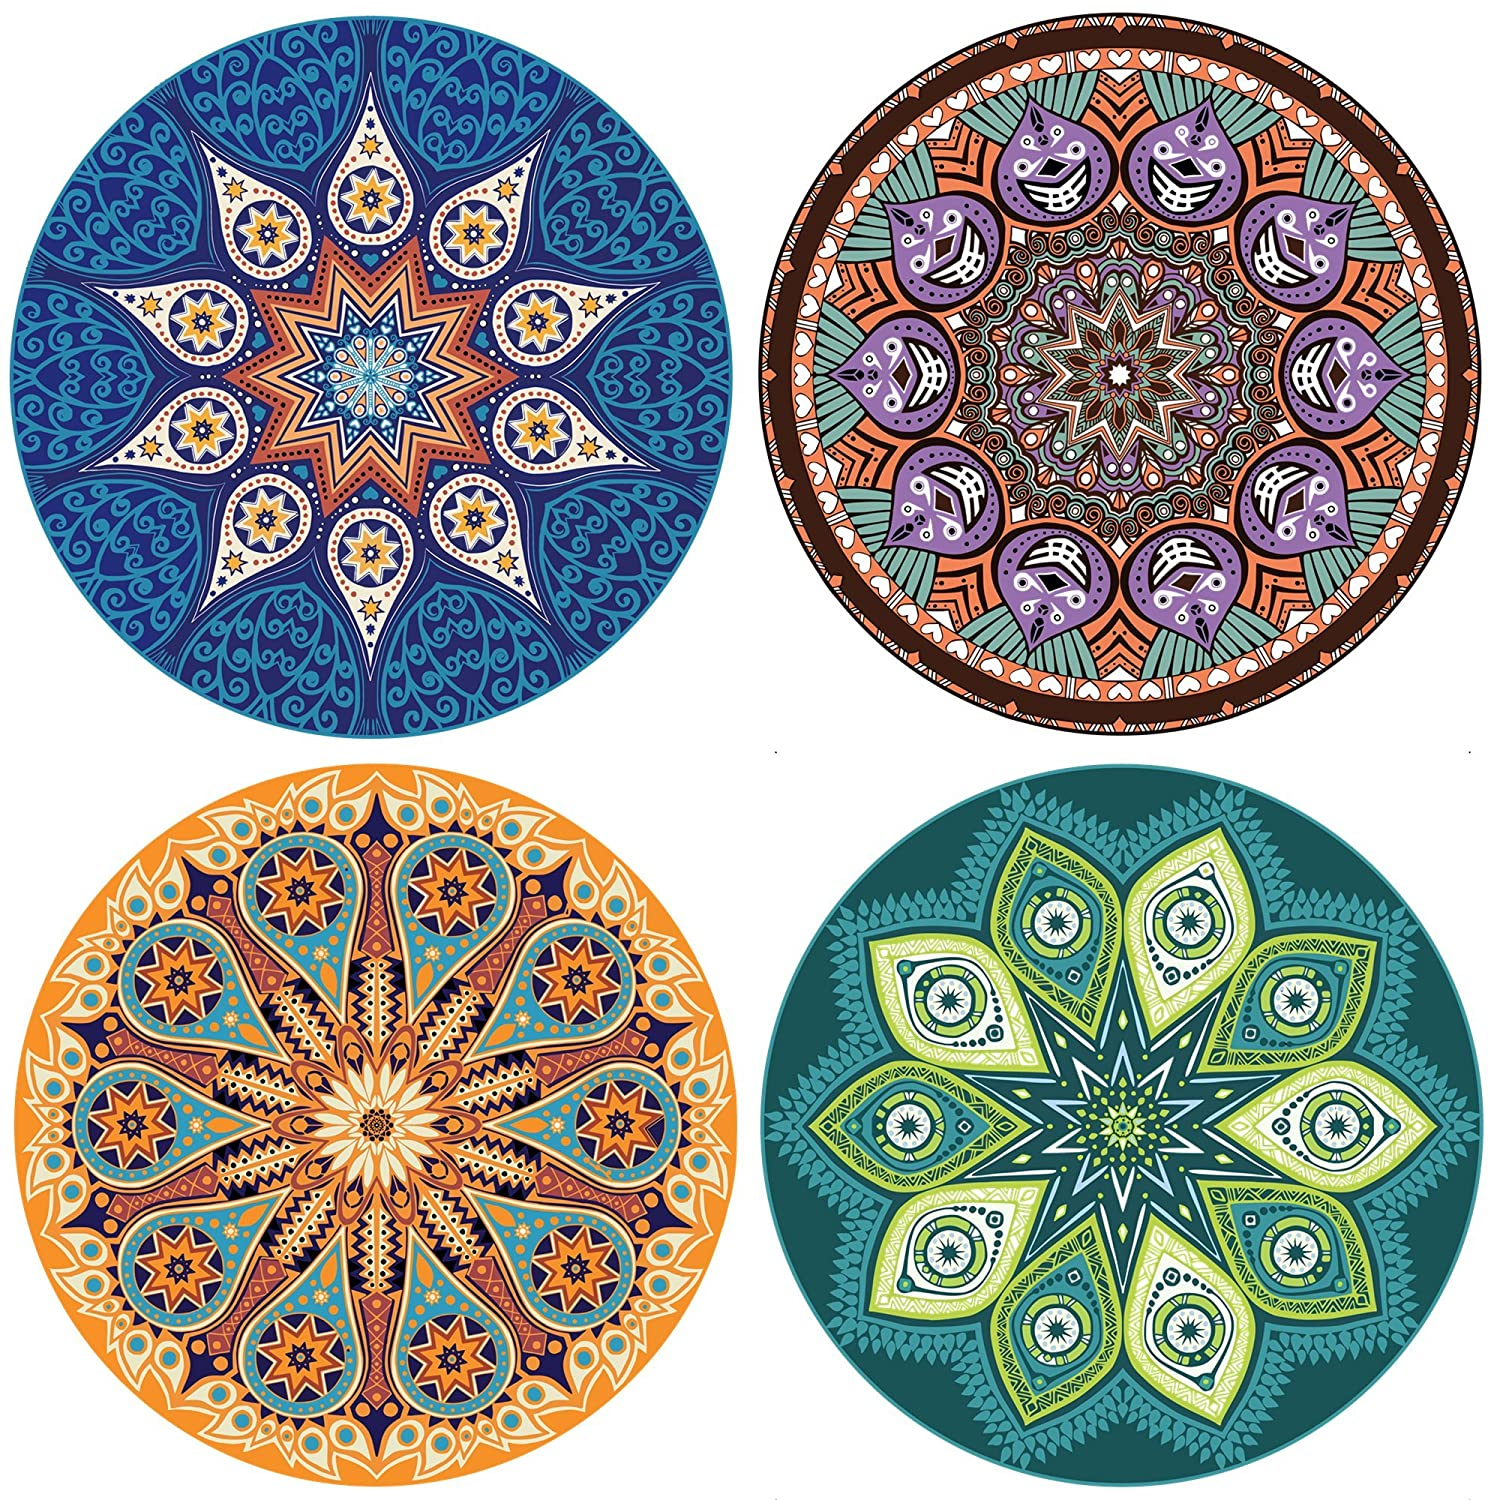 "ENKORE Absorbent Coaster For Drinks - 8 Pack Large 4.3"" Size Ceramic Thirsty Stone With Cork Back Fit Big Cup, 2 COASTERS For Each Design, No Holder - 4 Pretty Mandala Patterns Make A Home Decor Style"